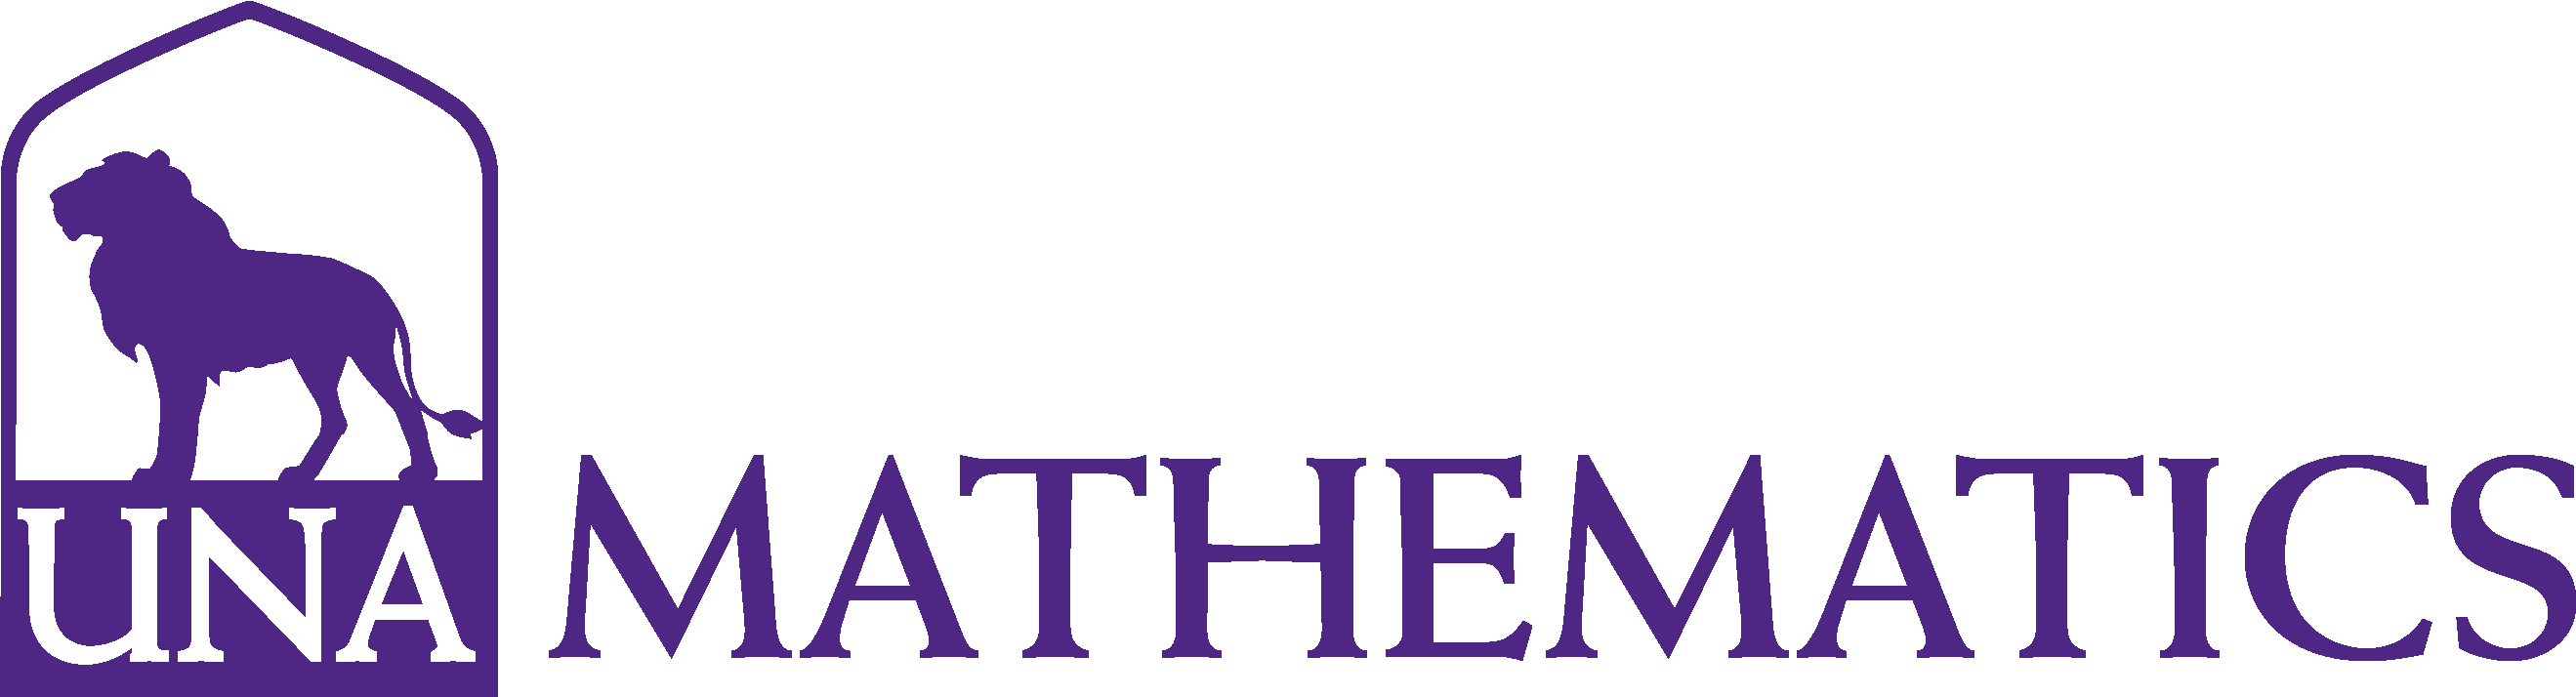 College of Arts and Sciences - Mathematics Logo - Purple - Version 3